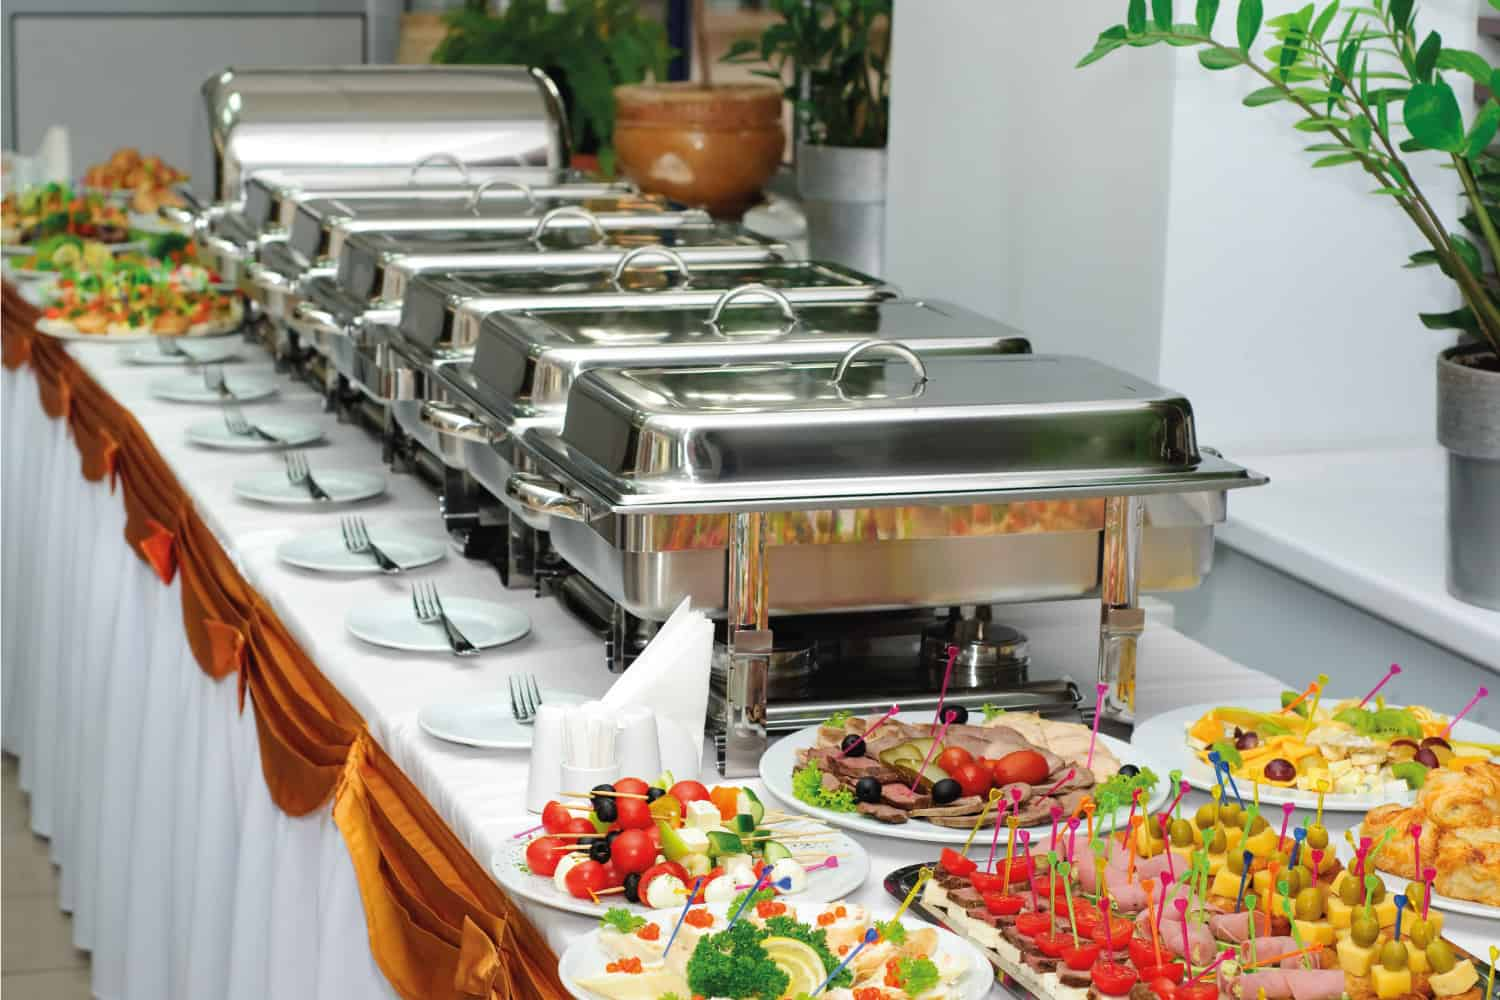 bain marie used as serving dish in a banquet table